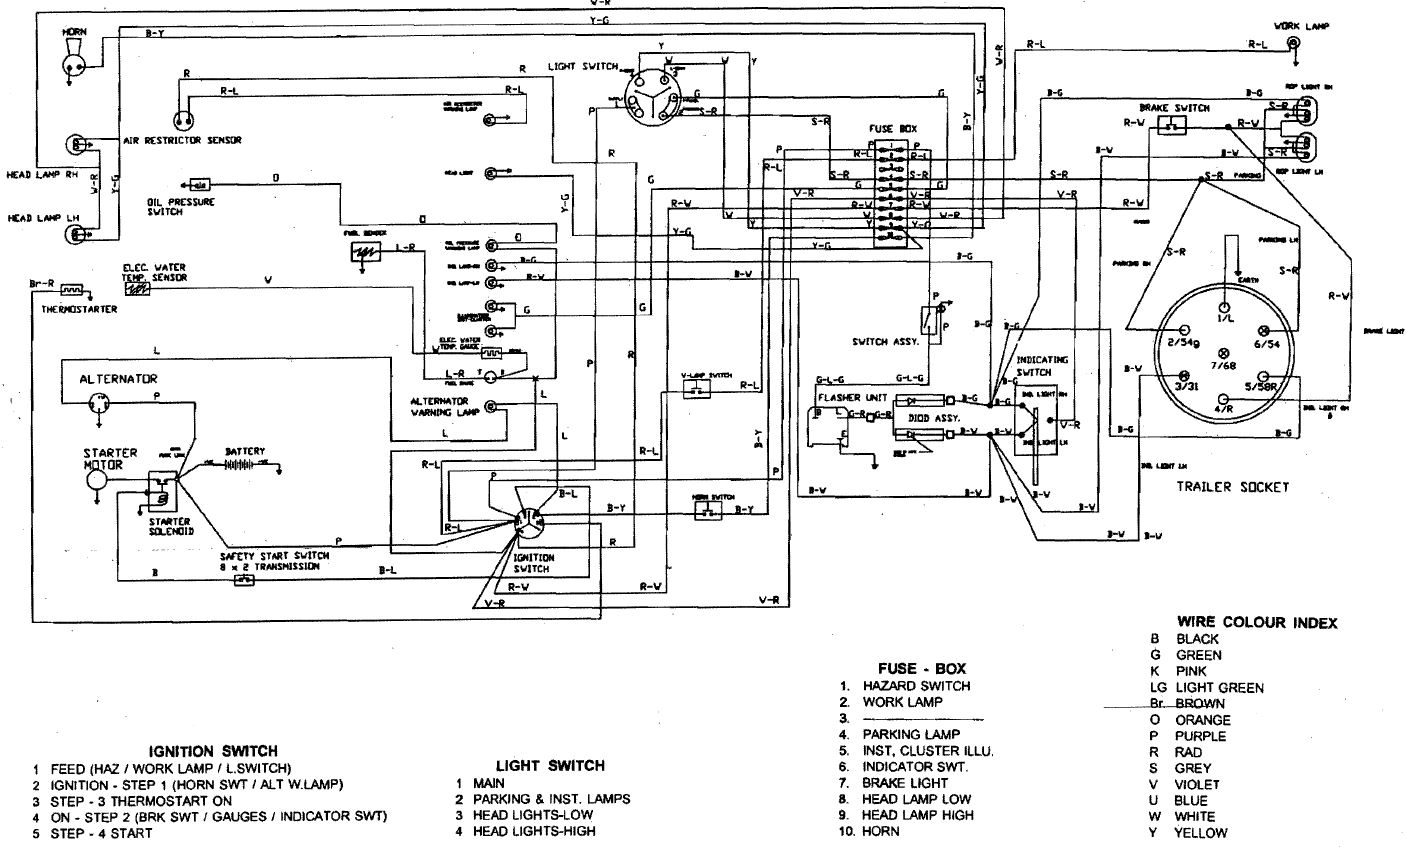 Ignition switch wiring diagram on kubota l175 wiring diagram, kubota tractor bx2200 parts diagram, l245 kubota tractor diagrams, kubota ignition switch wiring diagram, kubota tractor transmission diagrams, kubota bx24 tractor parts diagrams, kubota work light wiring diagram, kubota tractor hydraulic system diagram, kubota tractor radio wiring diagram, kubota generator wiring diagram, kubota wiring diagram pdf, kubota b7100 wiring diagram, john deere tractor wiring diagrams, kubota tractor safety switch wiring diagram, kubota bx tractor accessories, kubota wiring diagram online, kubota bx24 wiring diagram, kubota tractor fuse box location, kubota starter wiring, kubota bx tractor battery,